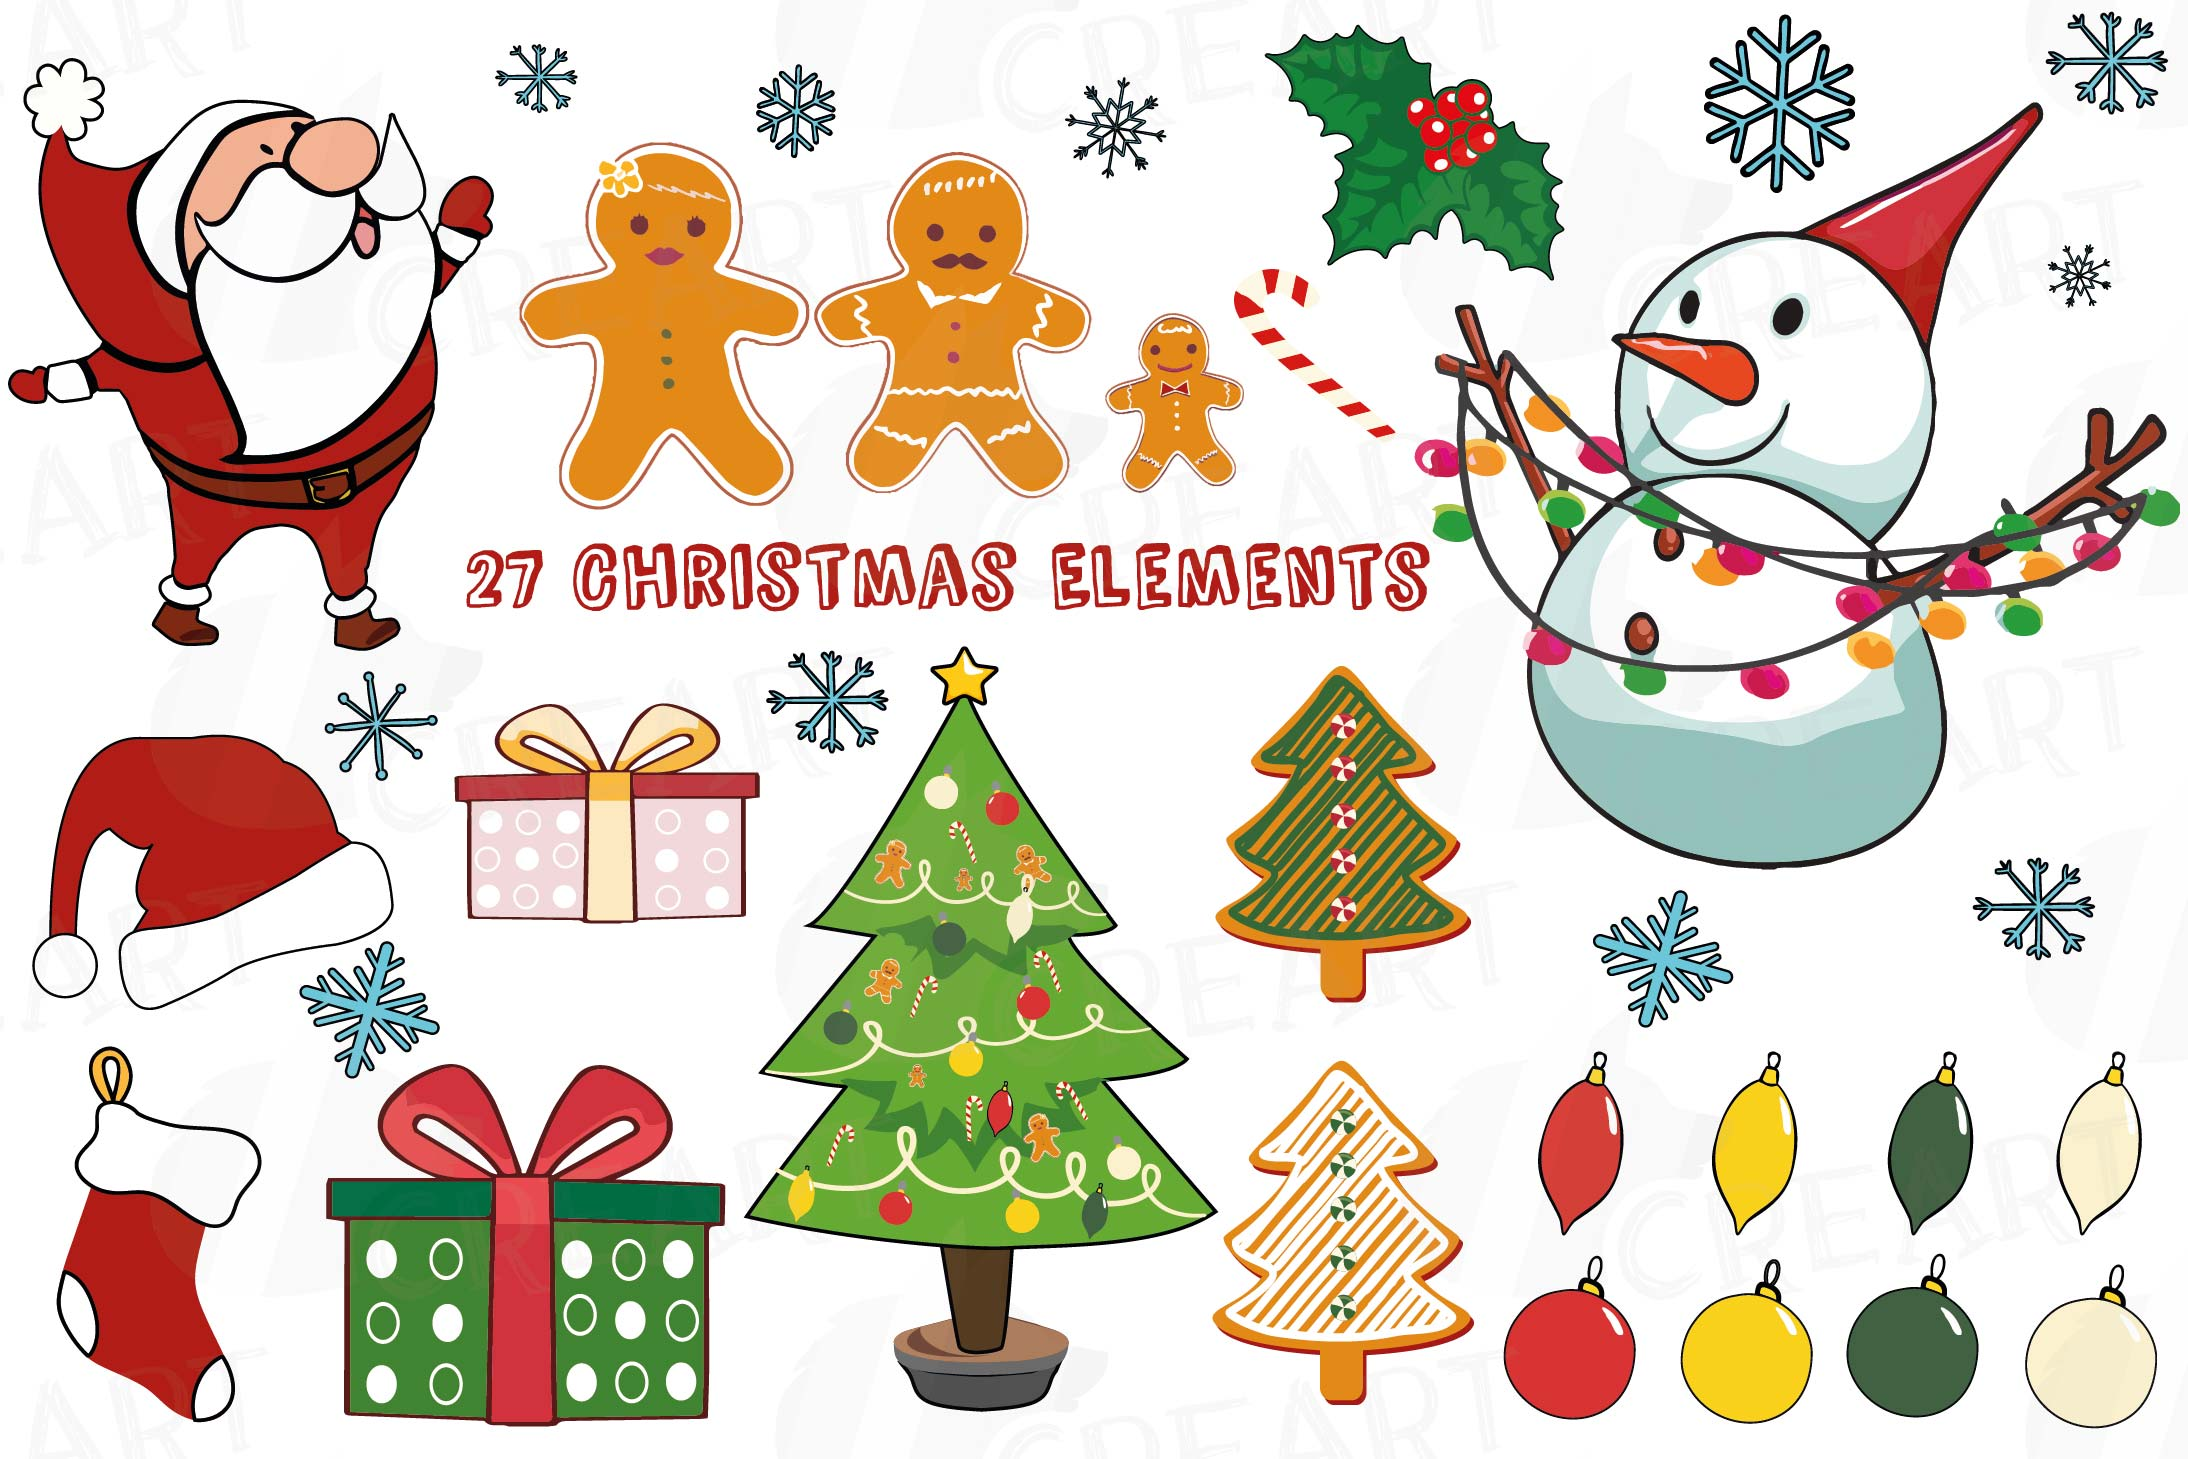 photograph about Printable Christmas Art called Colourful Xmas Things clip artwork pack, printable png